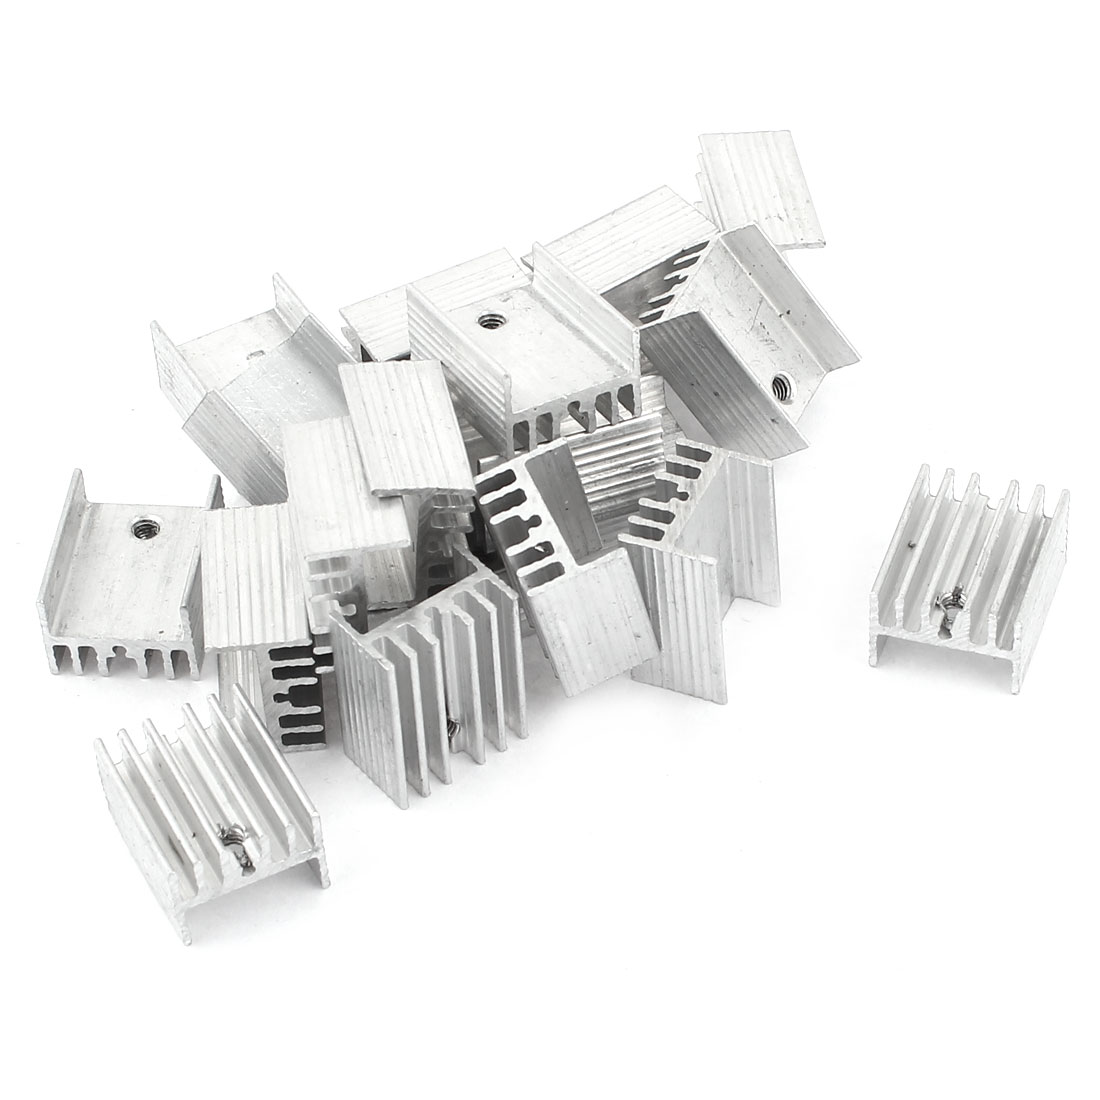 20 Pcs 2.5mm Hole Aluminium 19mmx15mmx10mm Heatsink Heat Sink Cooling Cooler Fin